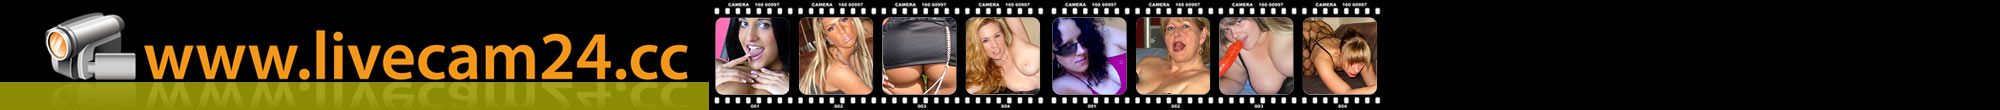 Guliana, 20 Jahre, BH: 75 C - gratissexwebcam -  - Video Web Cams Live Sex Chat von heissen Girls